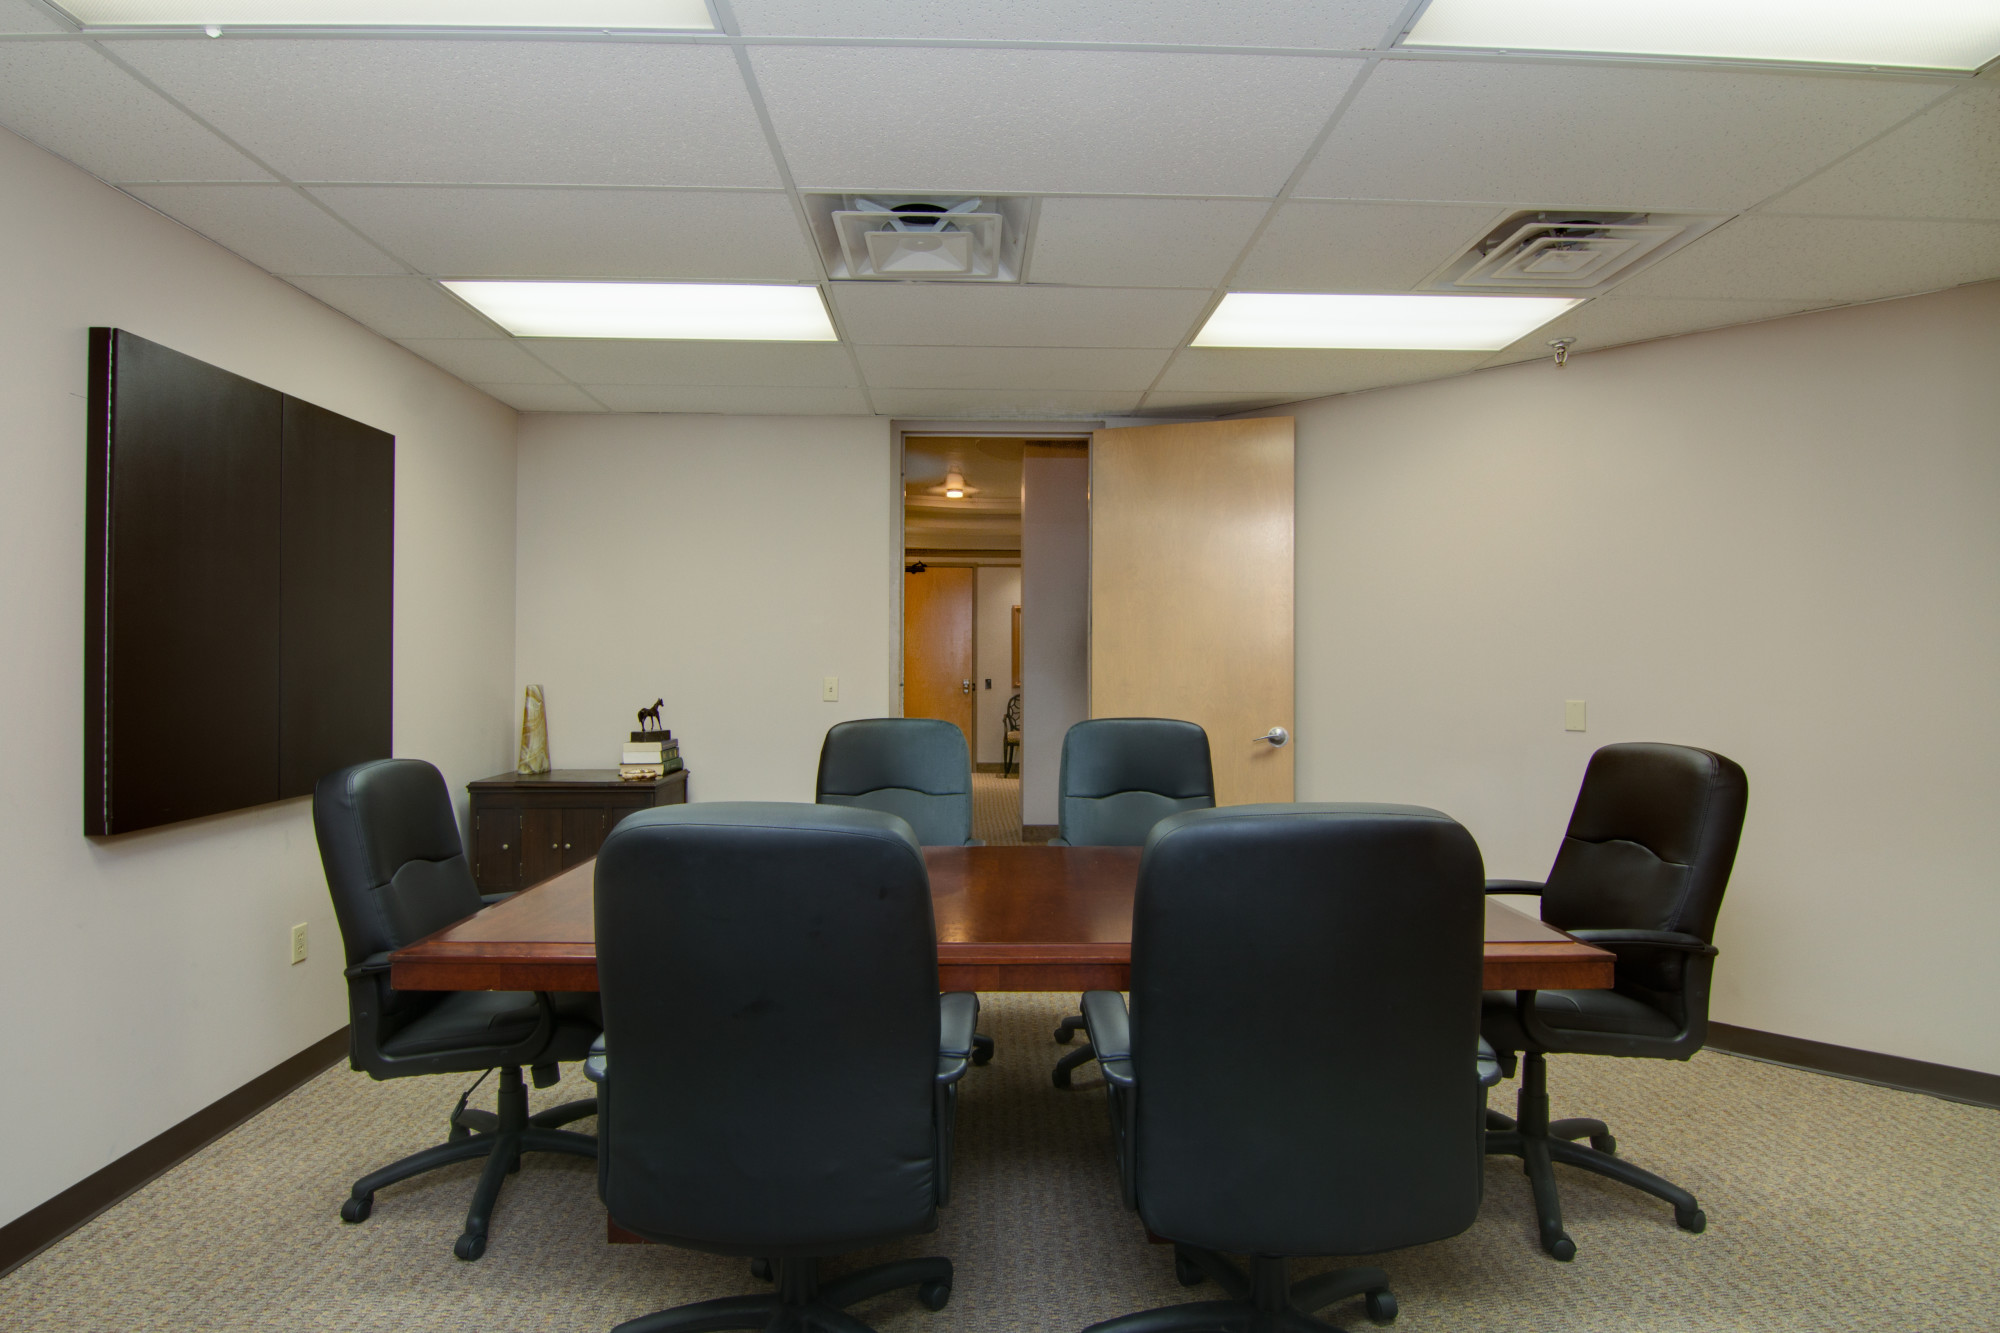 We offer many amenities including high-tech, furnished conference rooms.